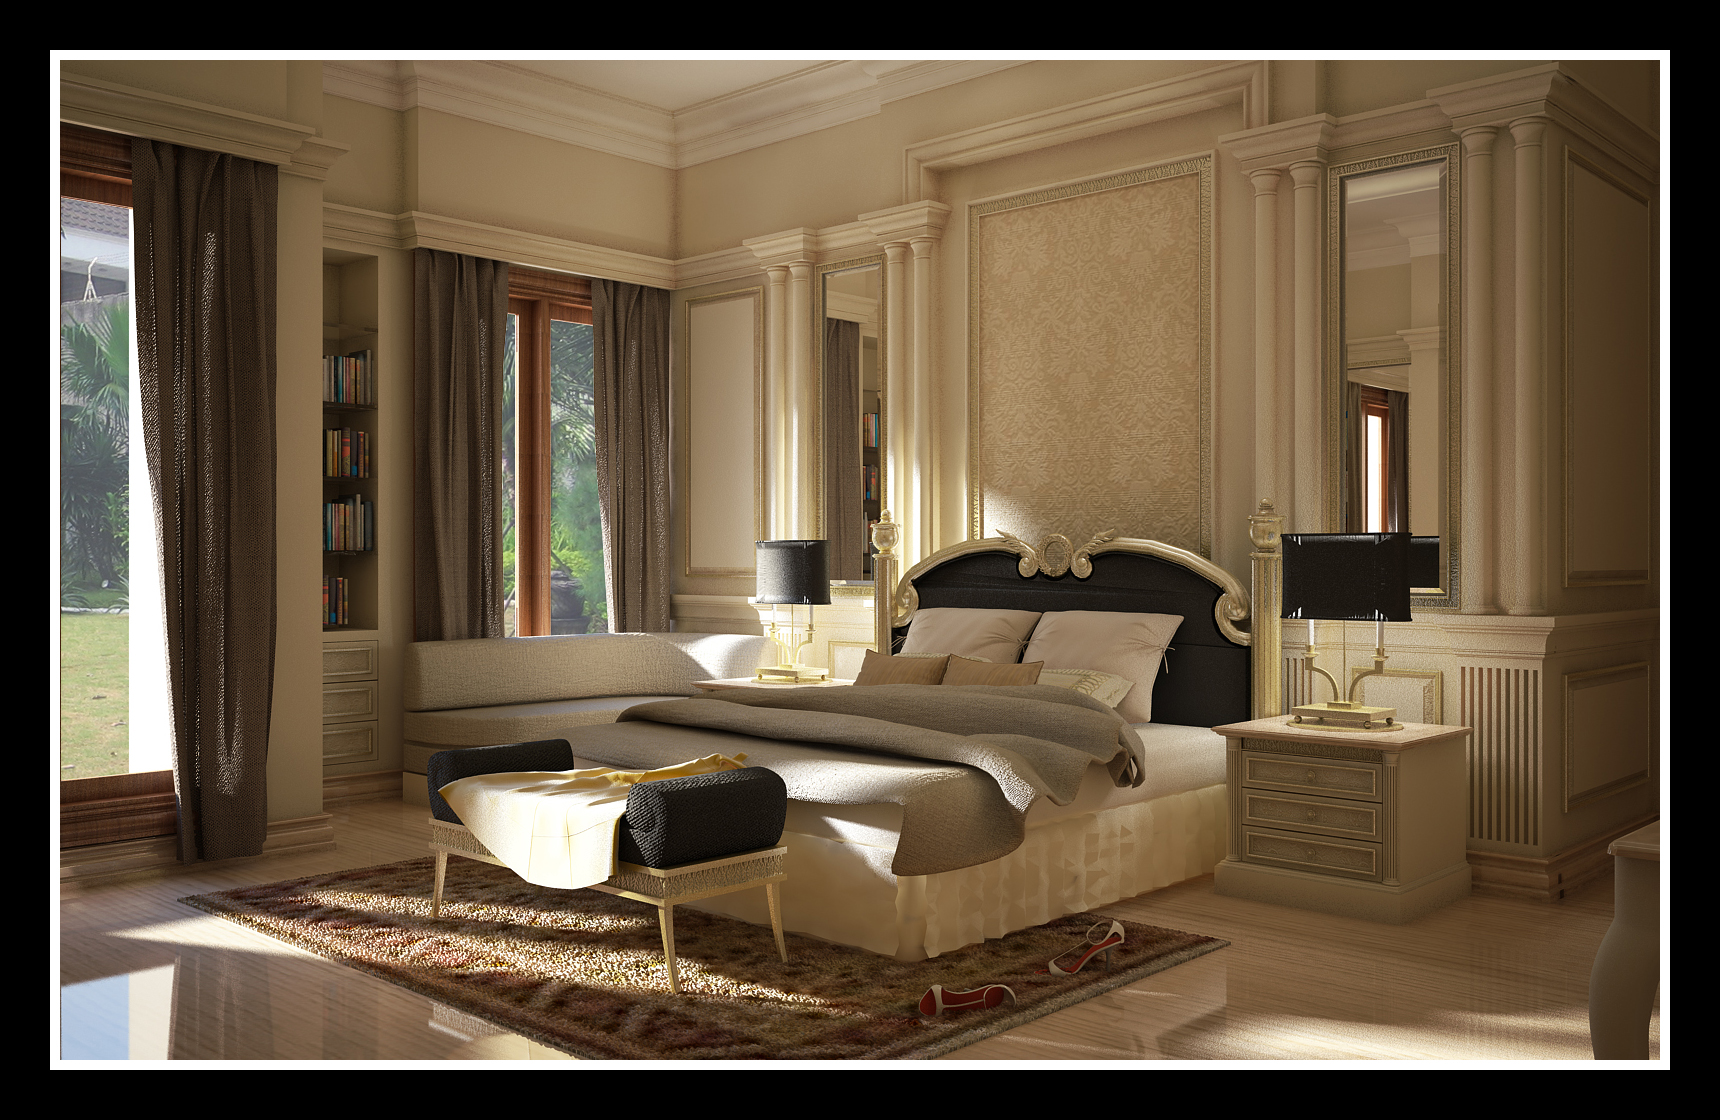 Interior Design Bedroom Ideas Classic Interior Design